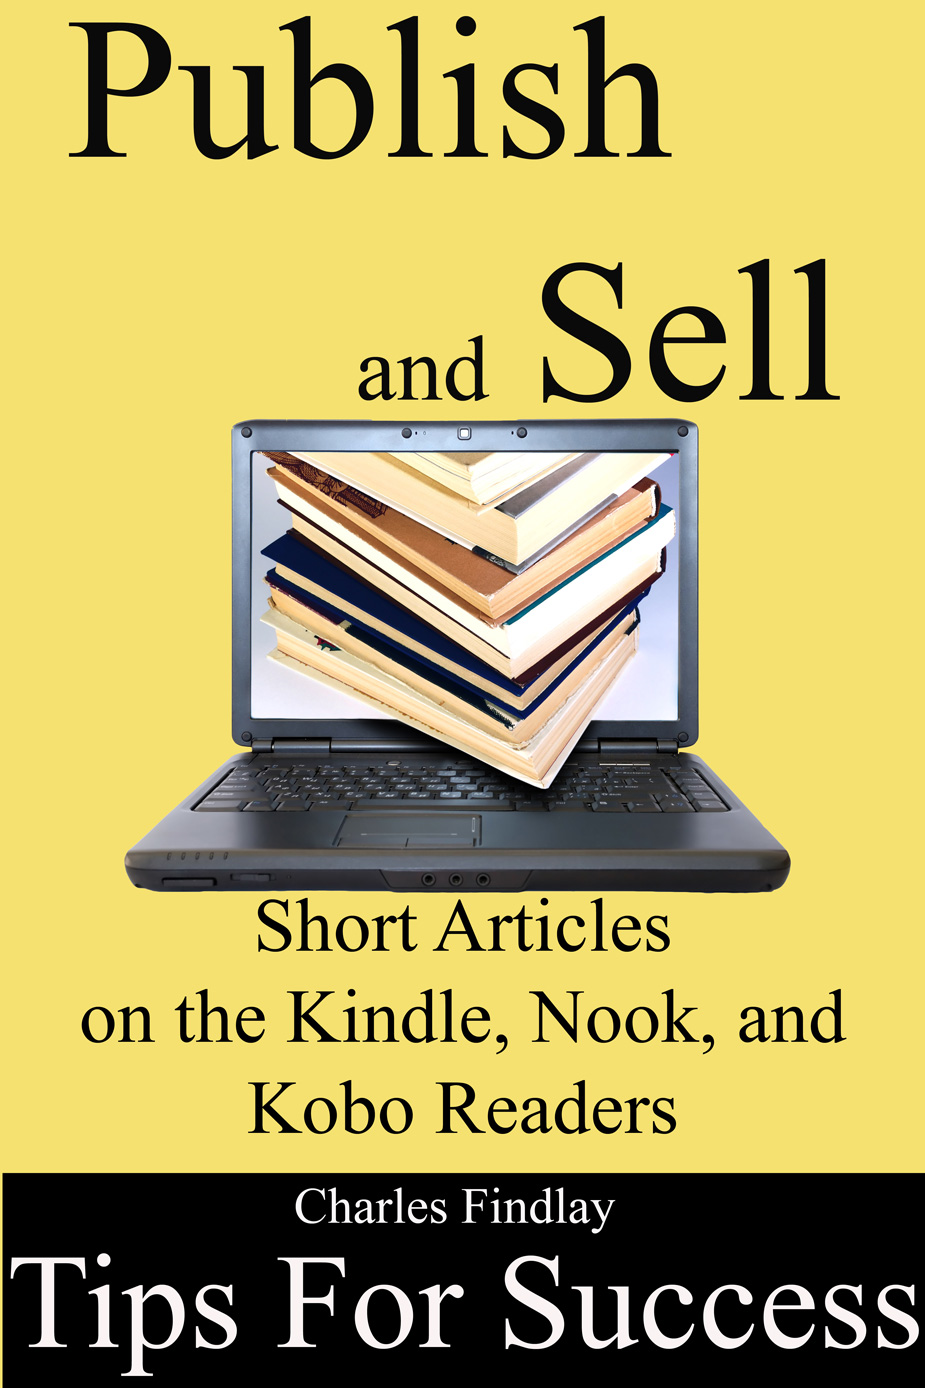 Publish and Sell Short Articles: 10 tips for success on the Kindle, Nook, and Kobo readers